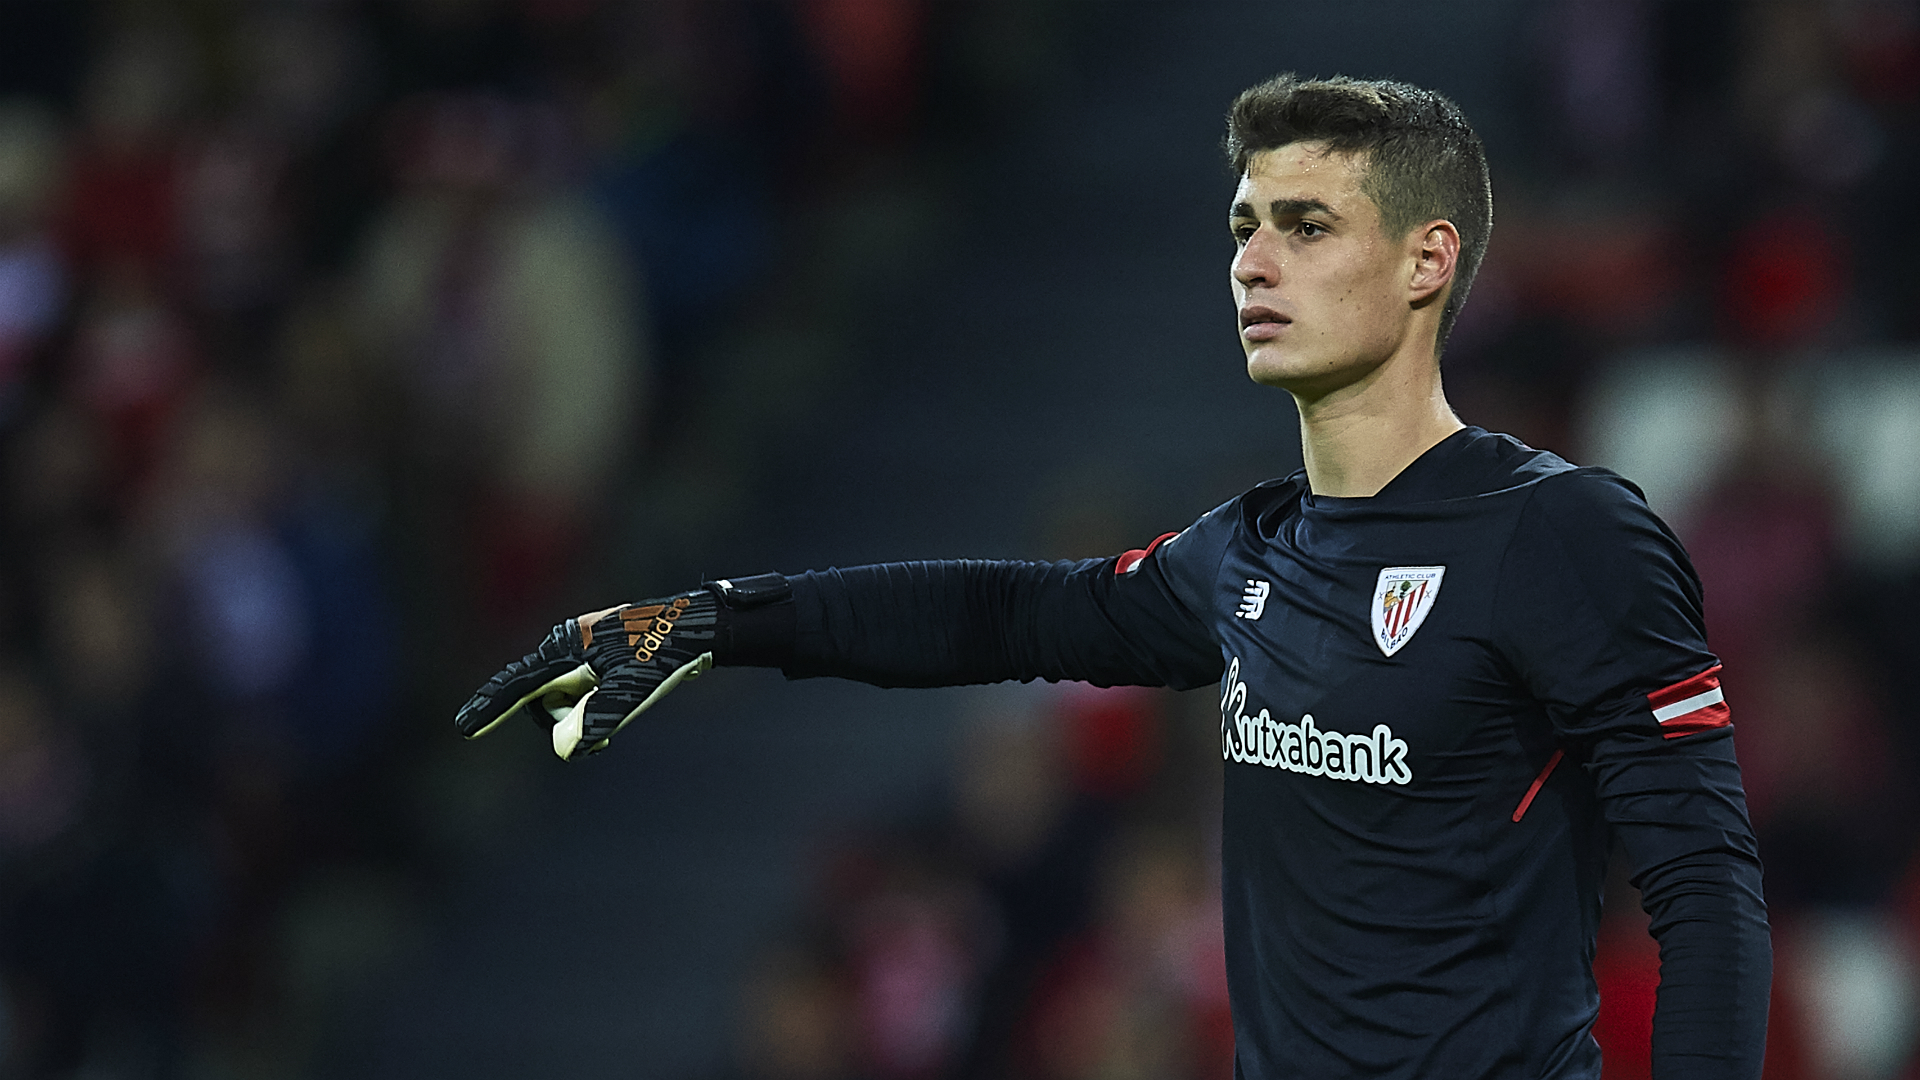 Kepa Arrizabalaga ends Real Madrid speculation by signing Athletic Bilbao deal